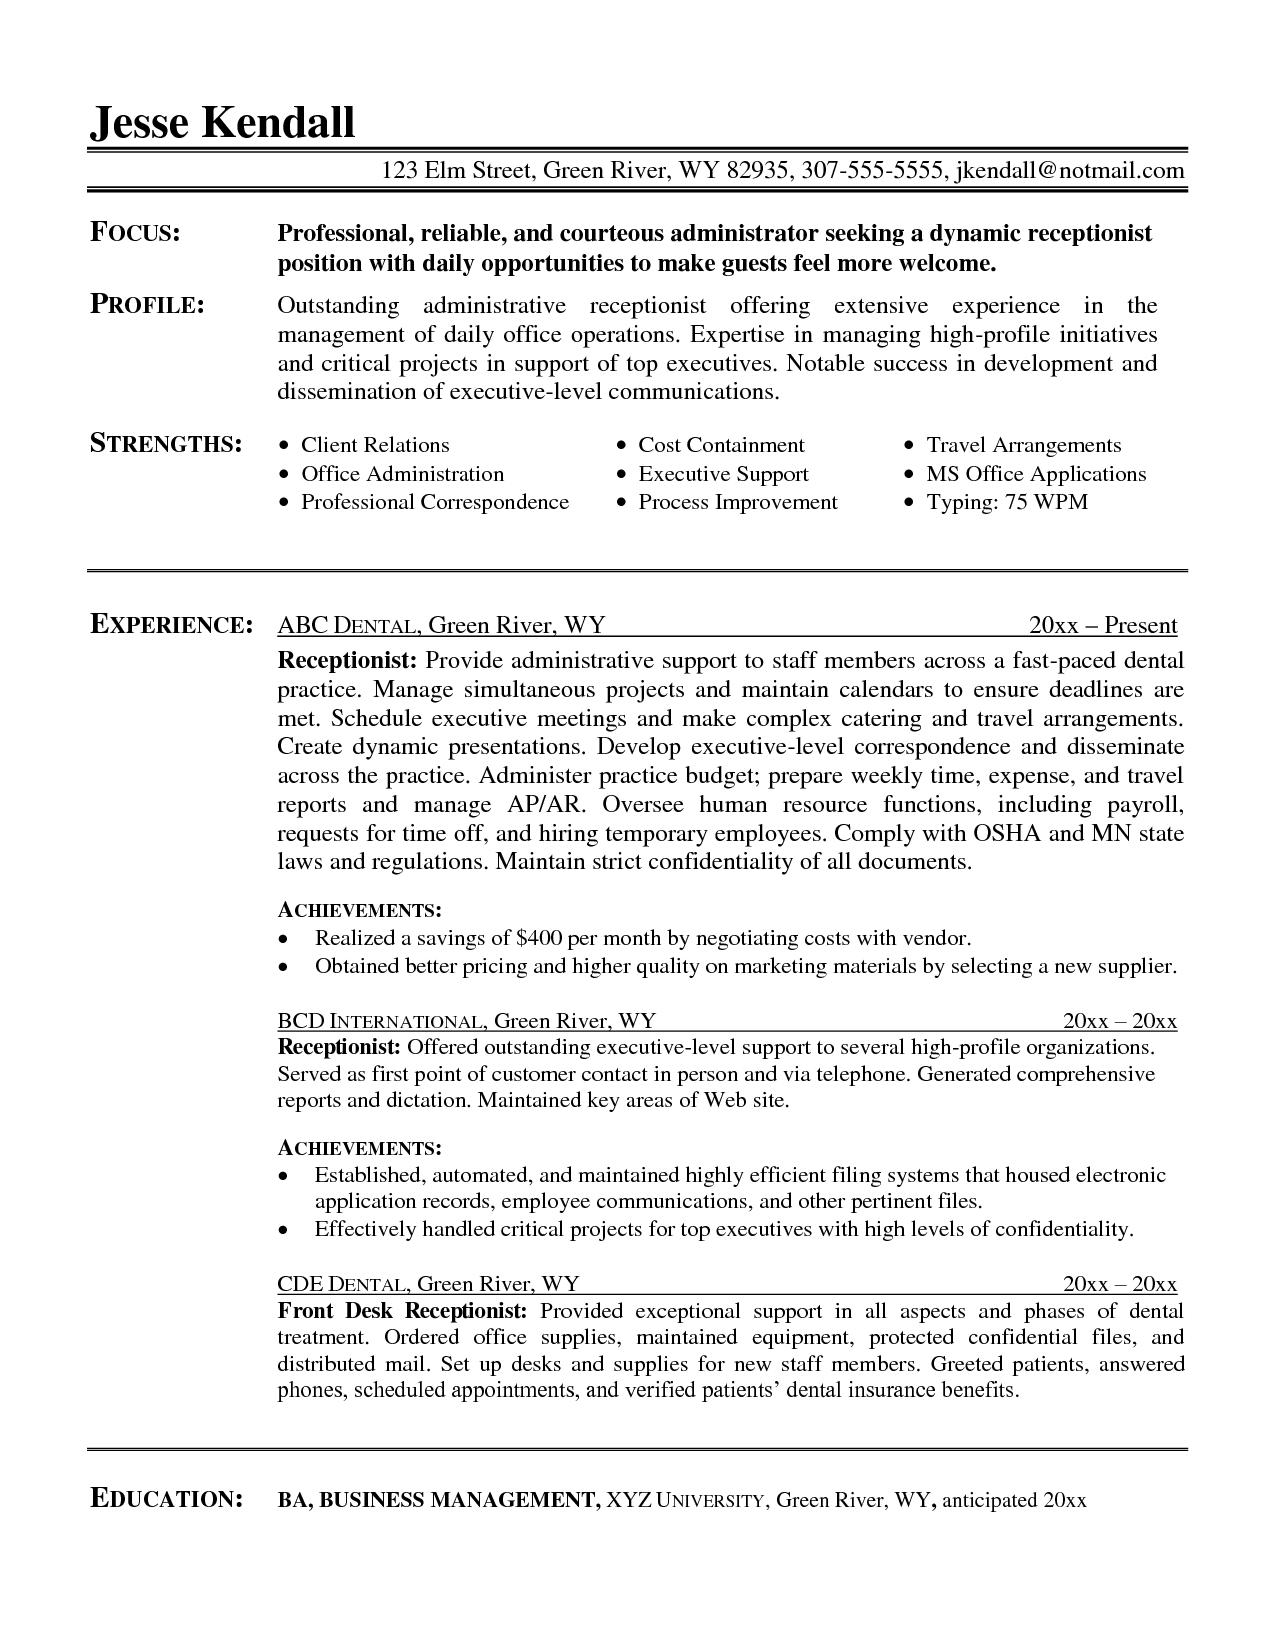 How To Set Up A Resume Glamorous Sample Receptionist Resume Example  Resume  Pinterest